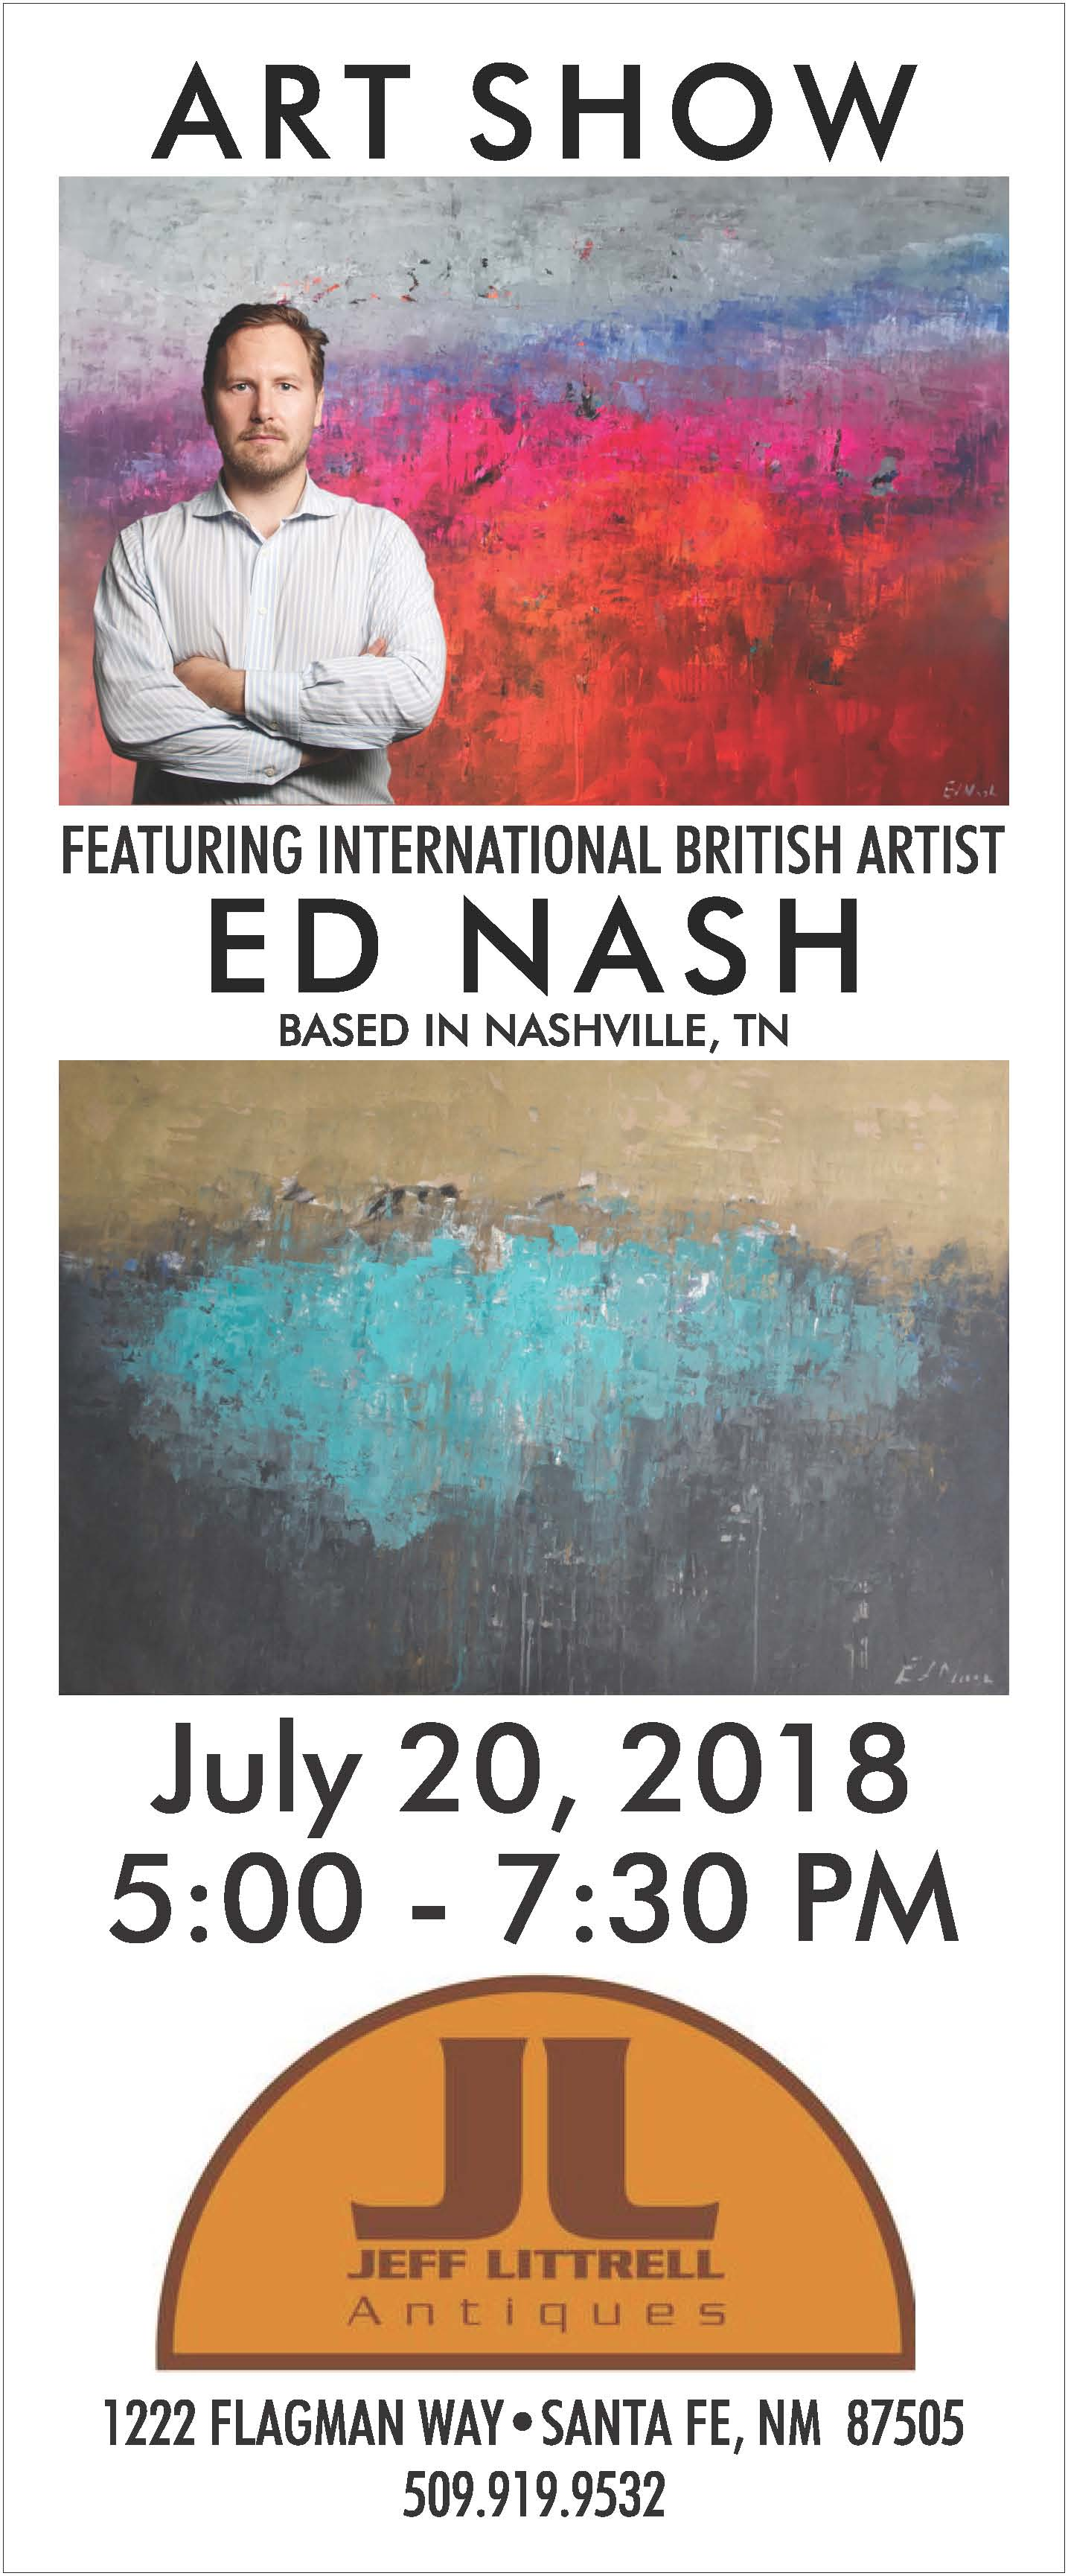 ED NASH ART SHOW @ Jeff Littrell Antiques | Santa Fe | New Mexico | United States